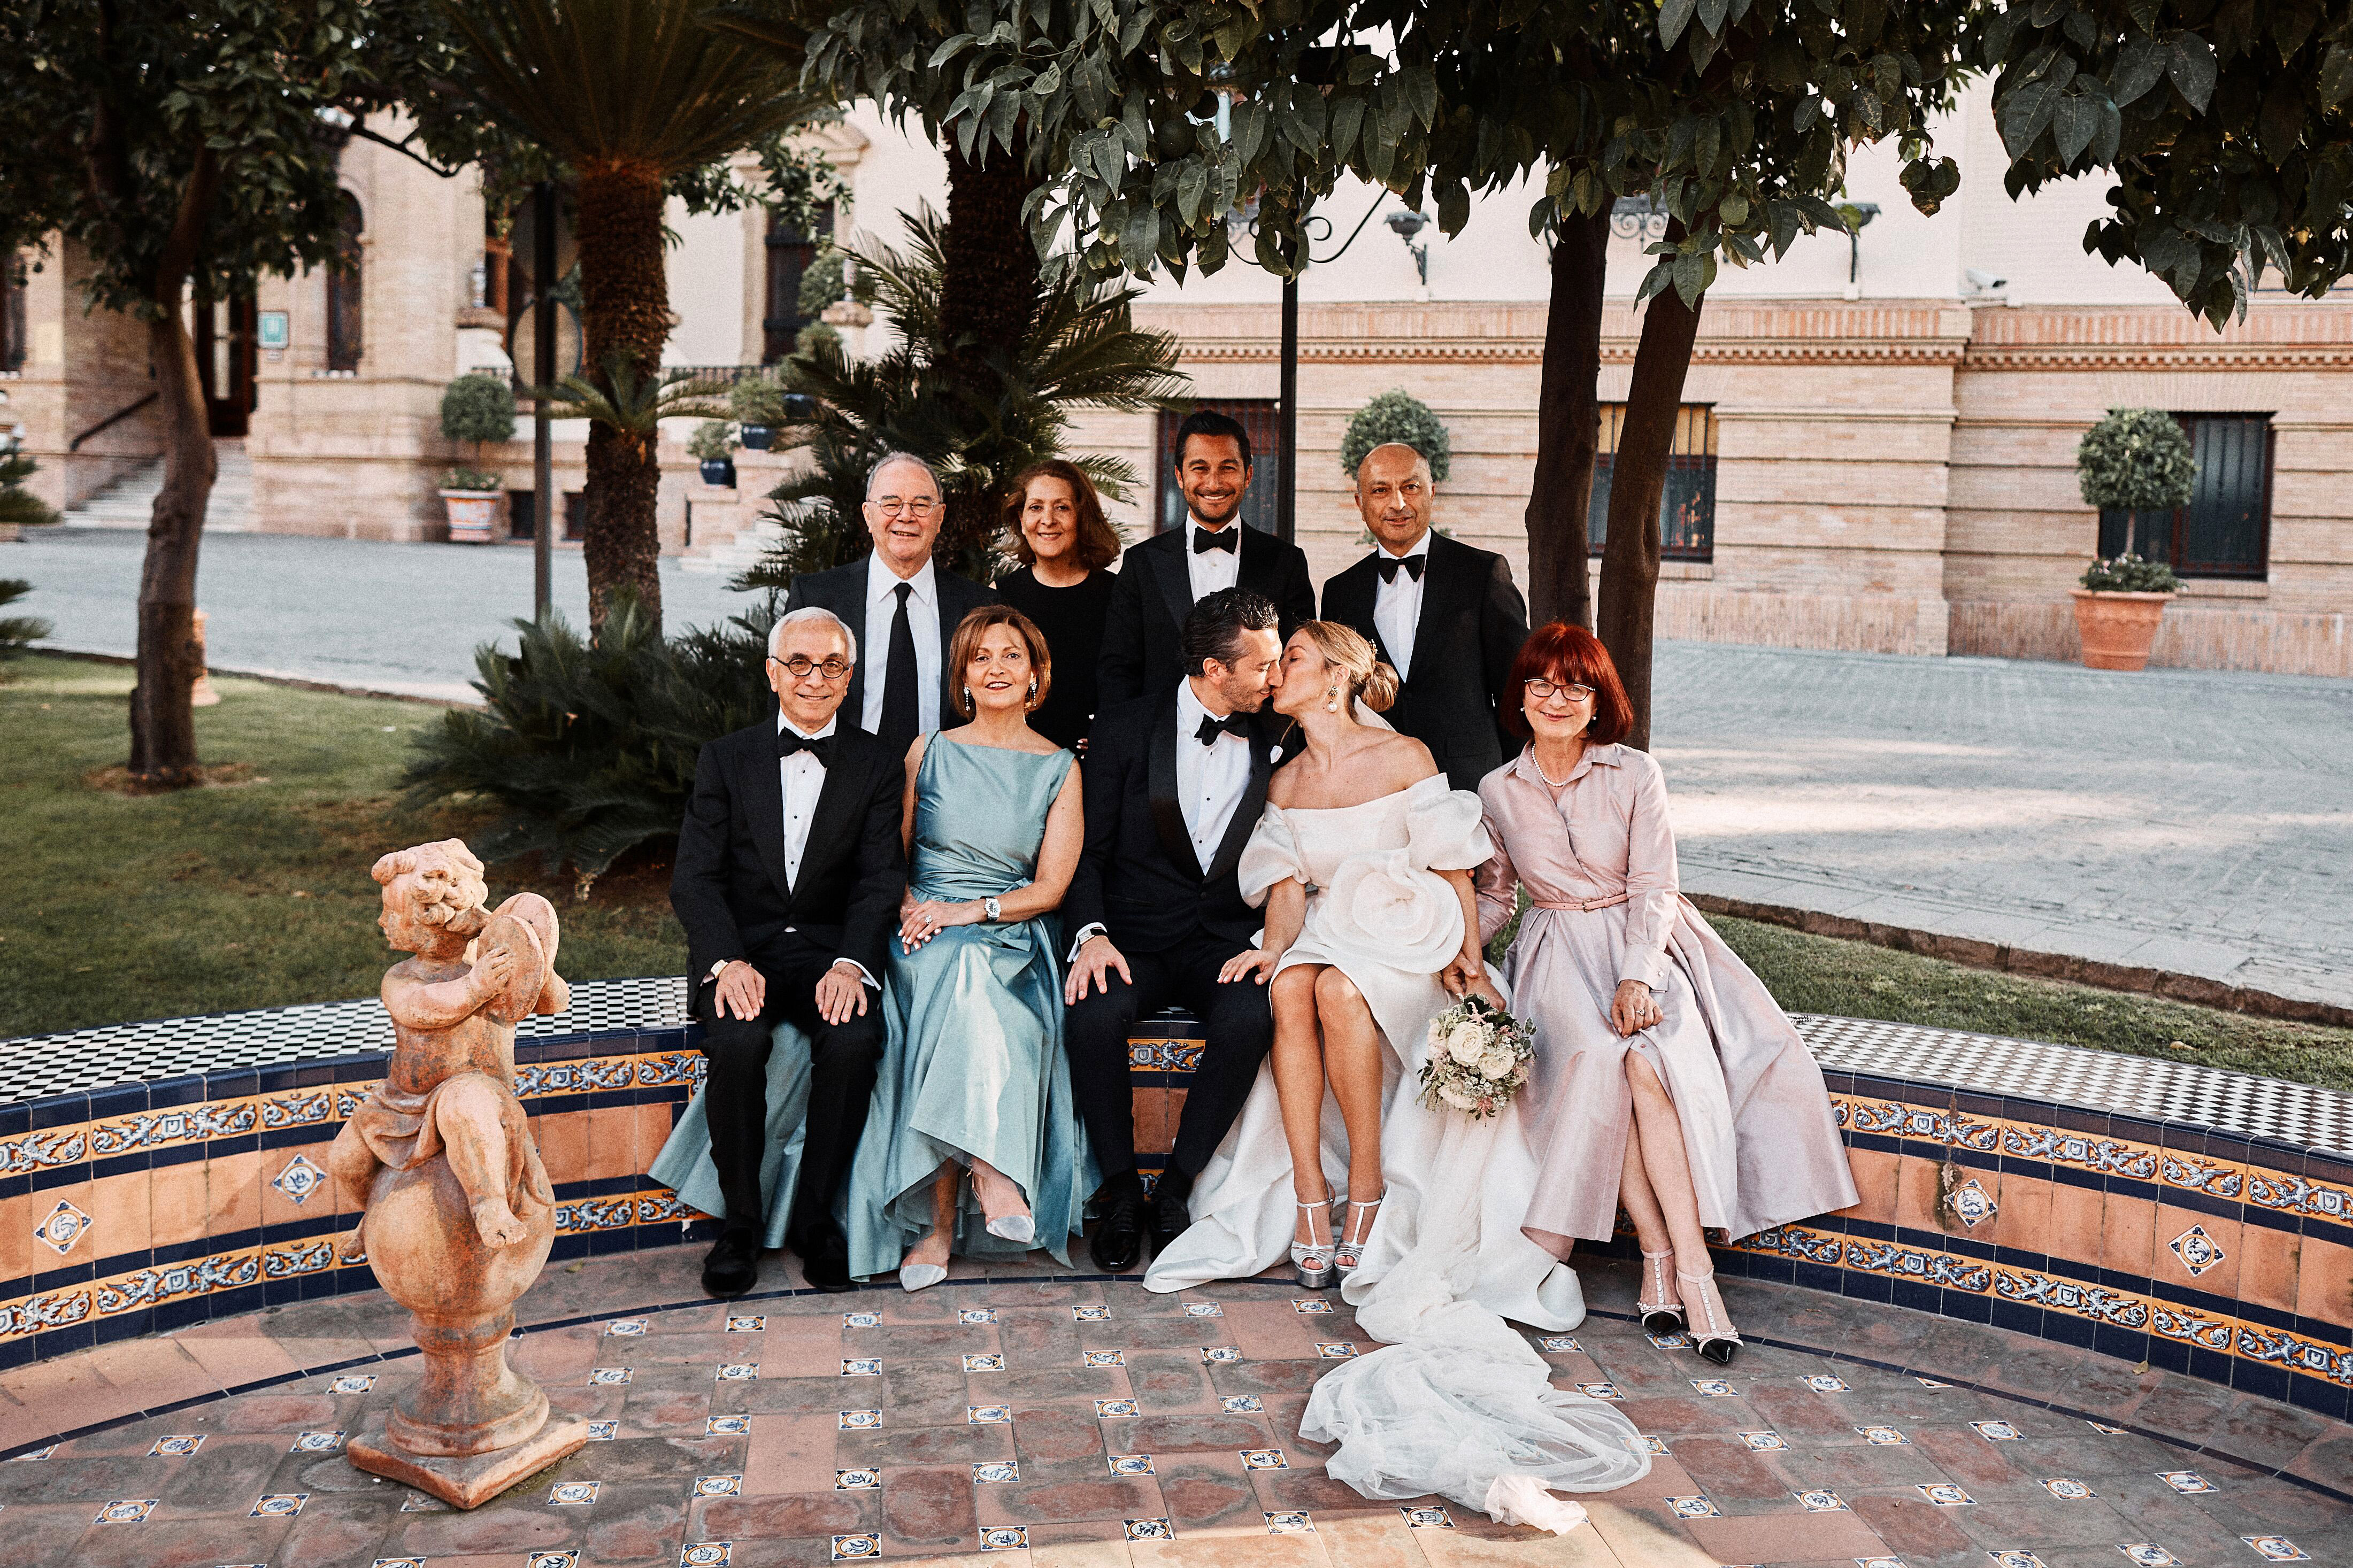 karolina sorab wedding family and couple portrait